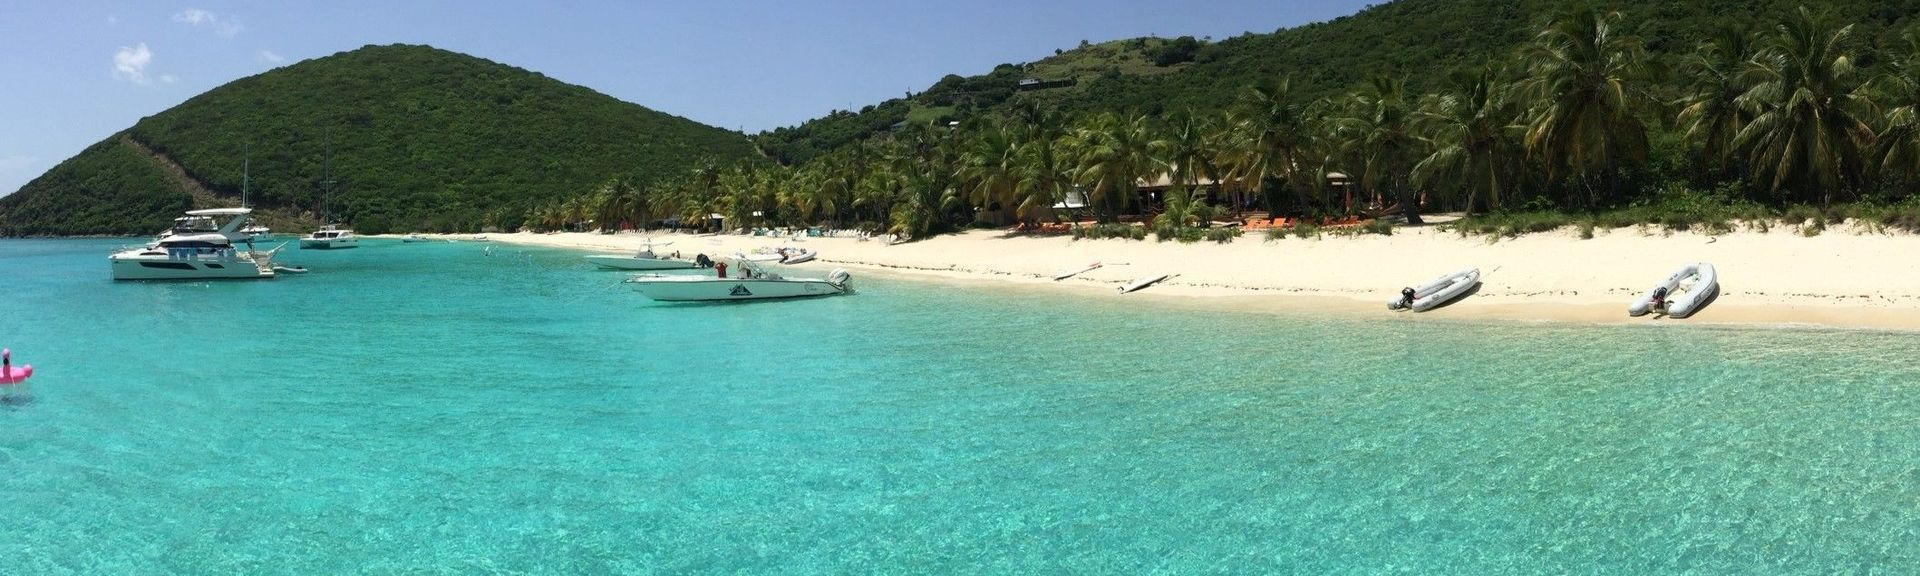 Jost Van Dyke, British Virgin Islands